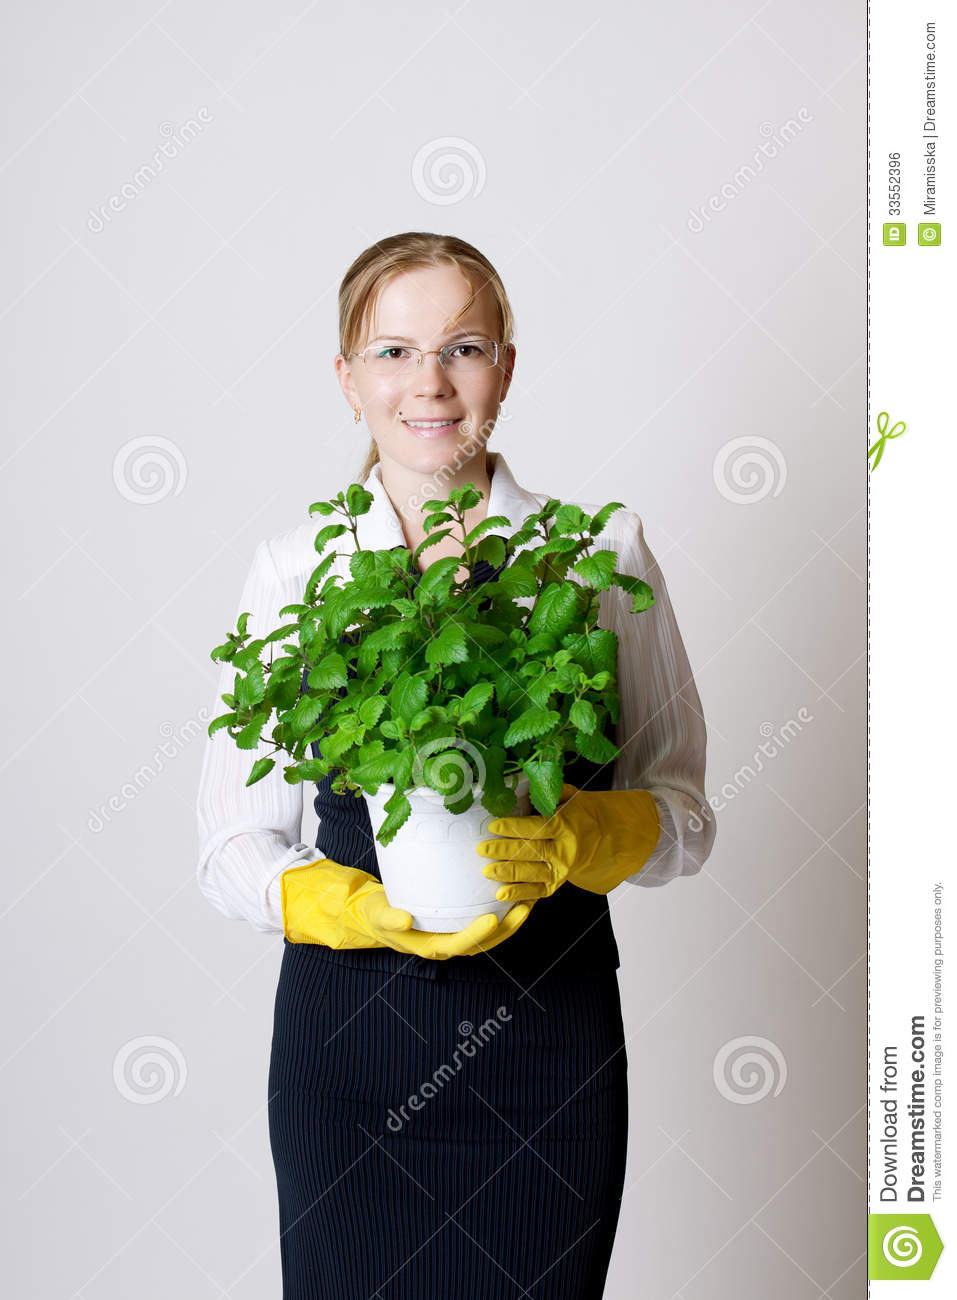 Successful business woman royalty free stock image image 33552396 - Successful flower growing business ...